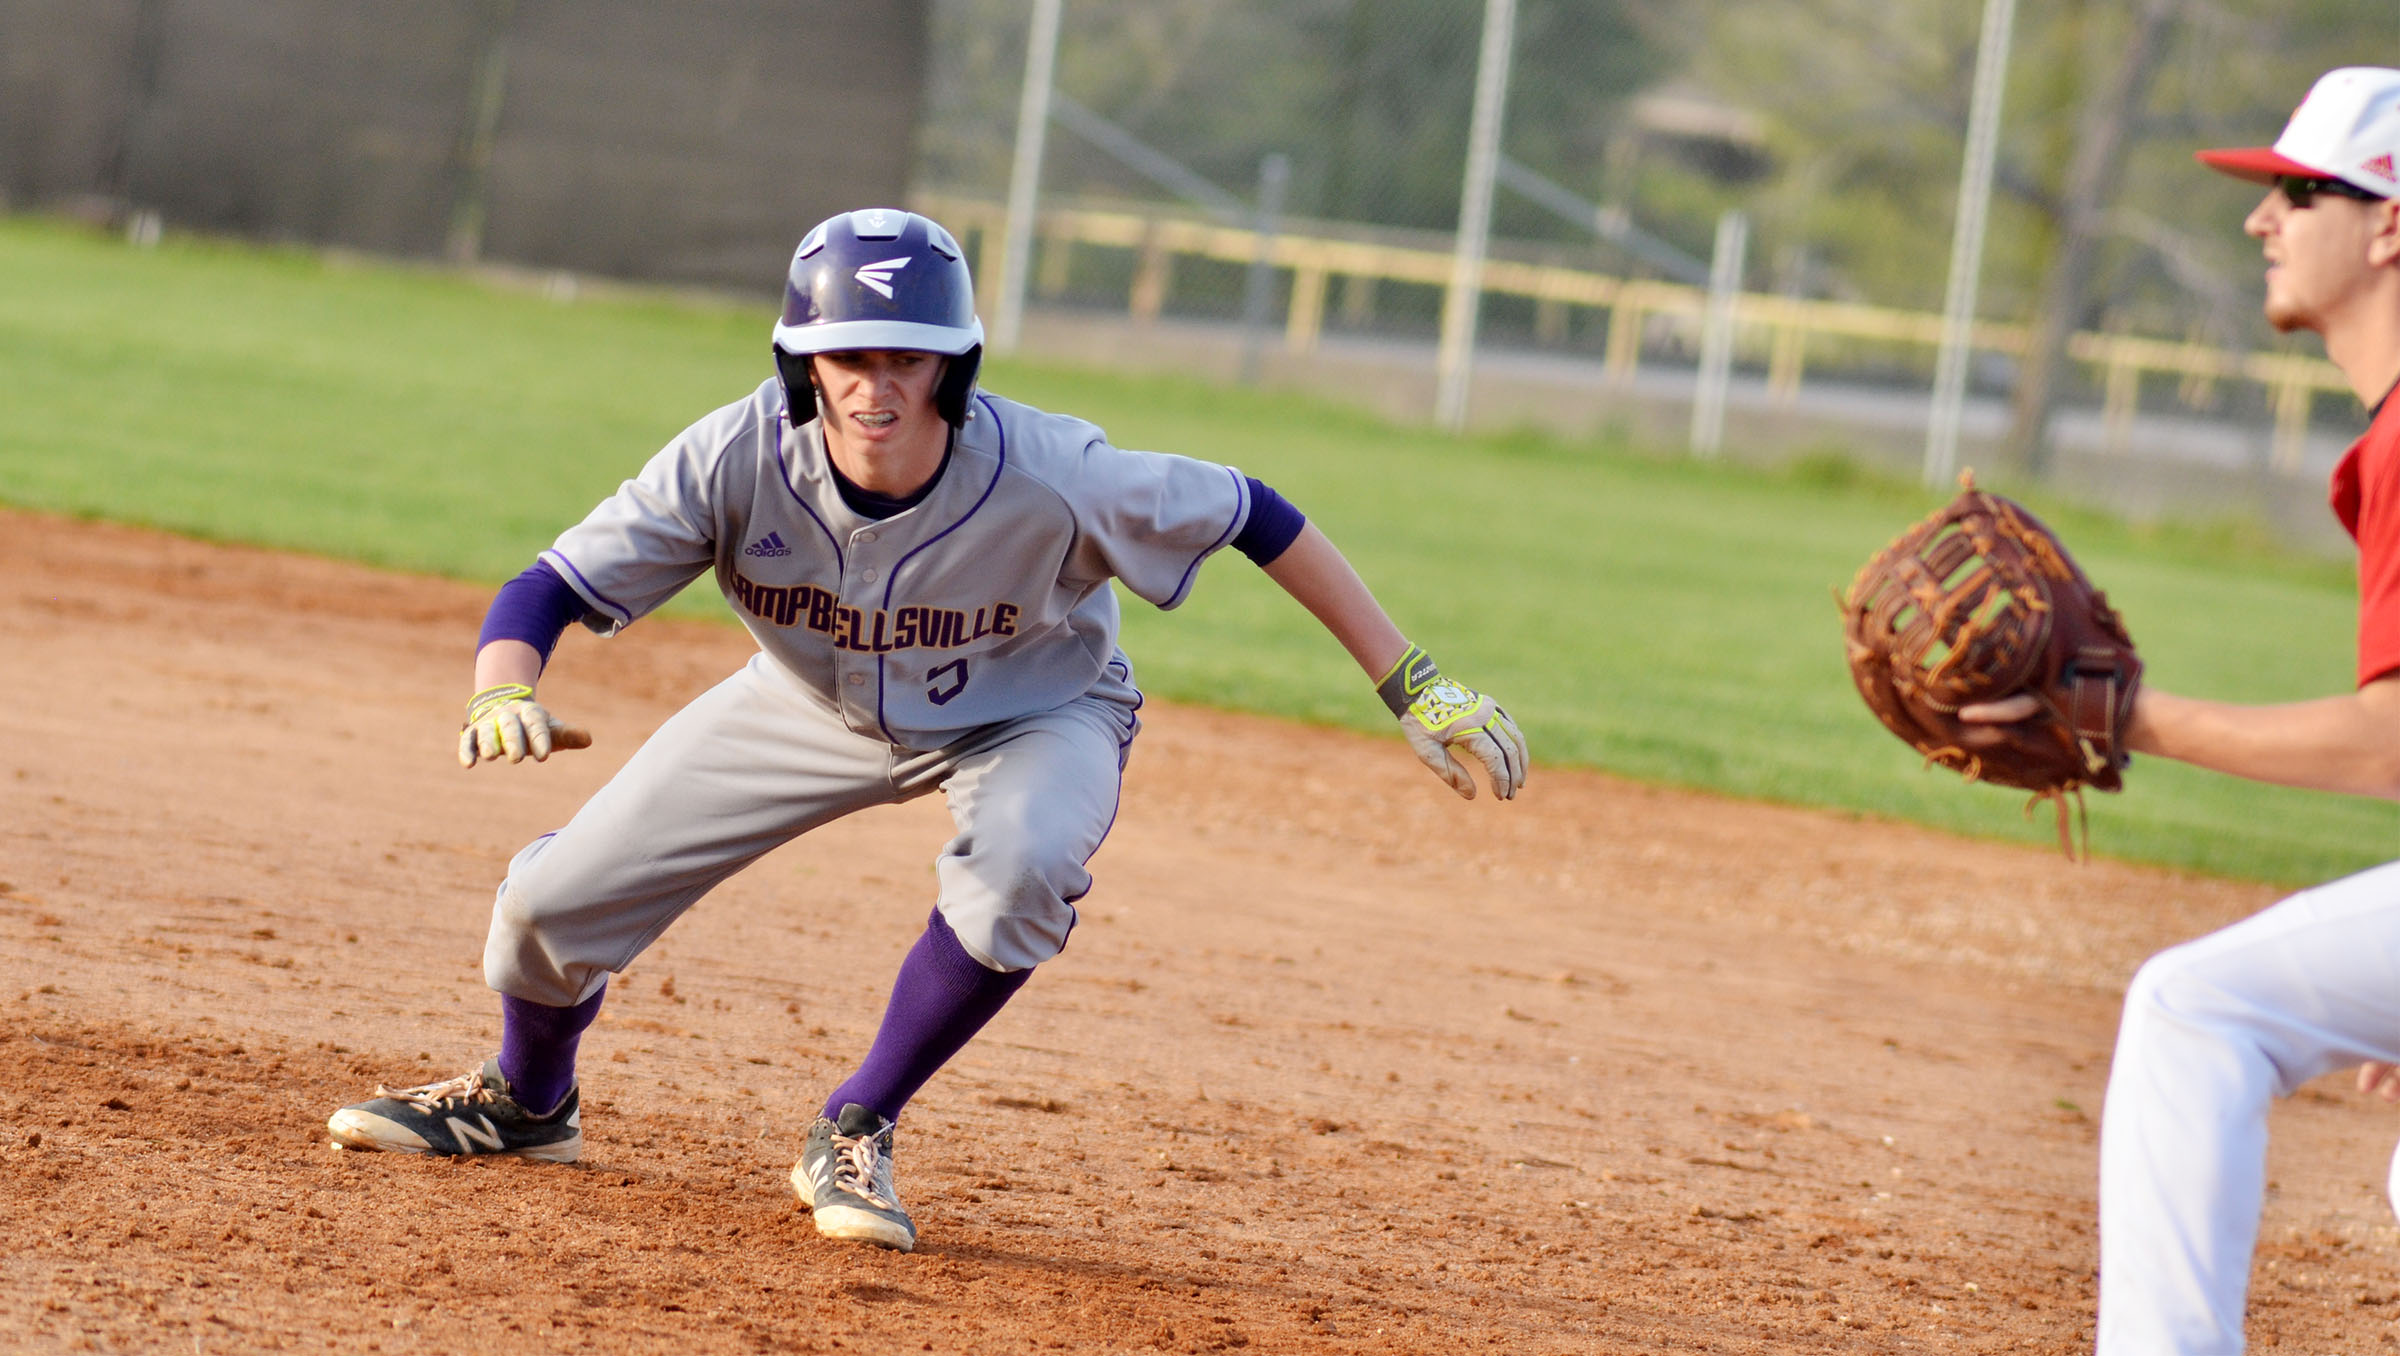 Campbellsville Middle School eighth-grader Arren Hash runs back to first base.